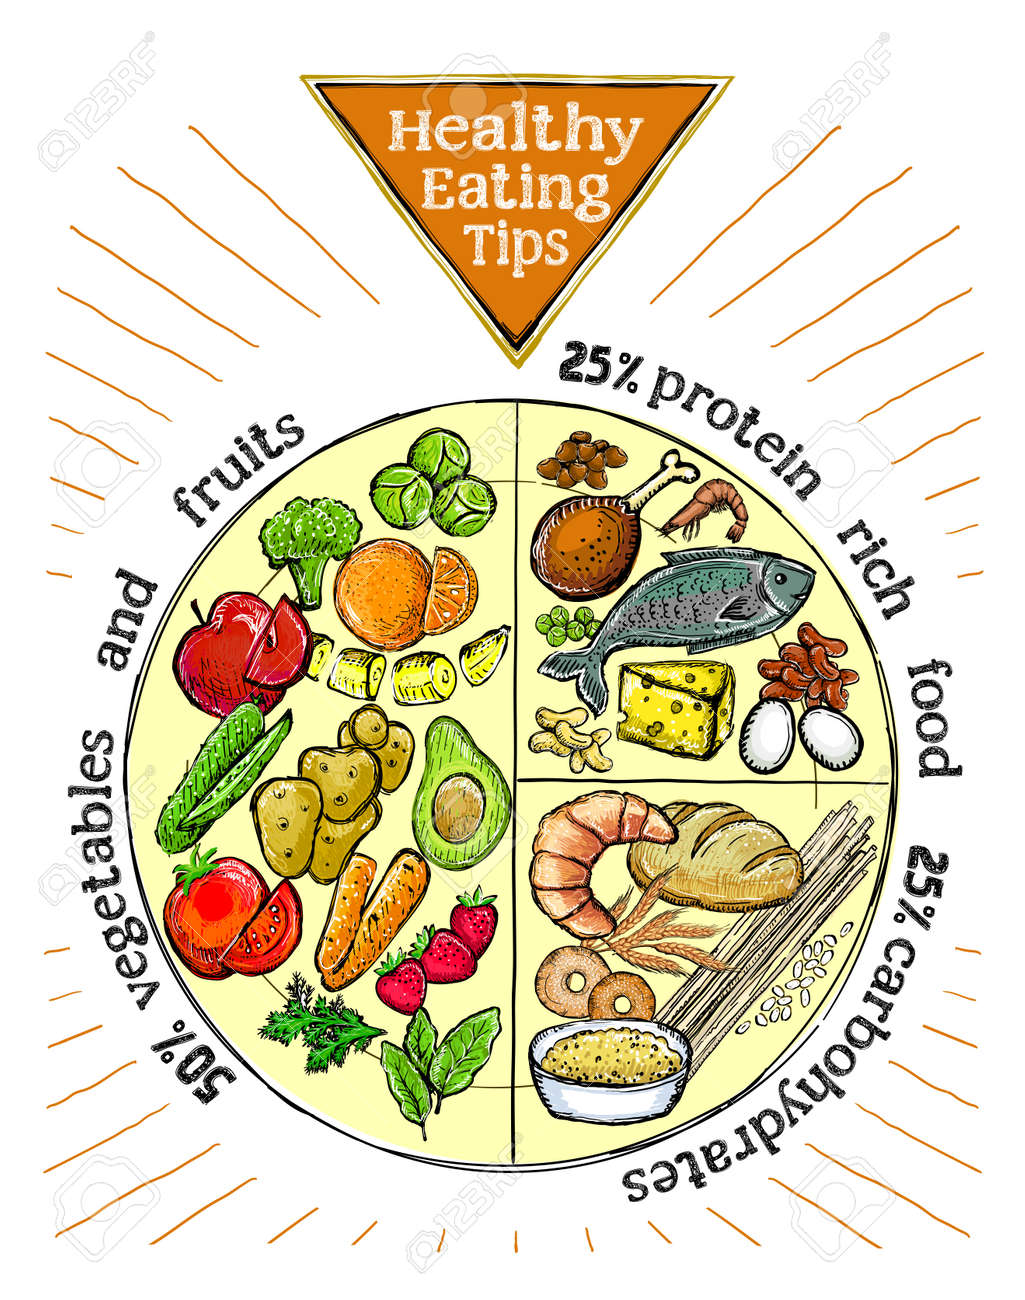 Healthy eating tips plate, proper nutrition proportions, hand drawn vector illustration - 132429102